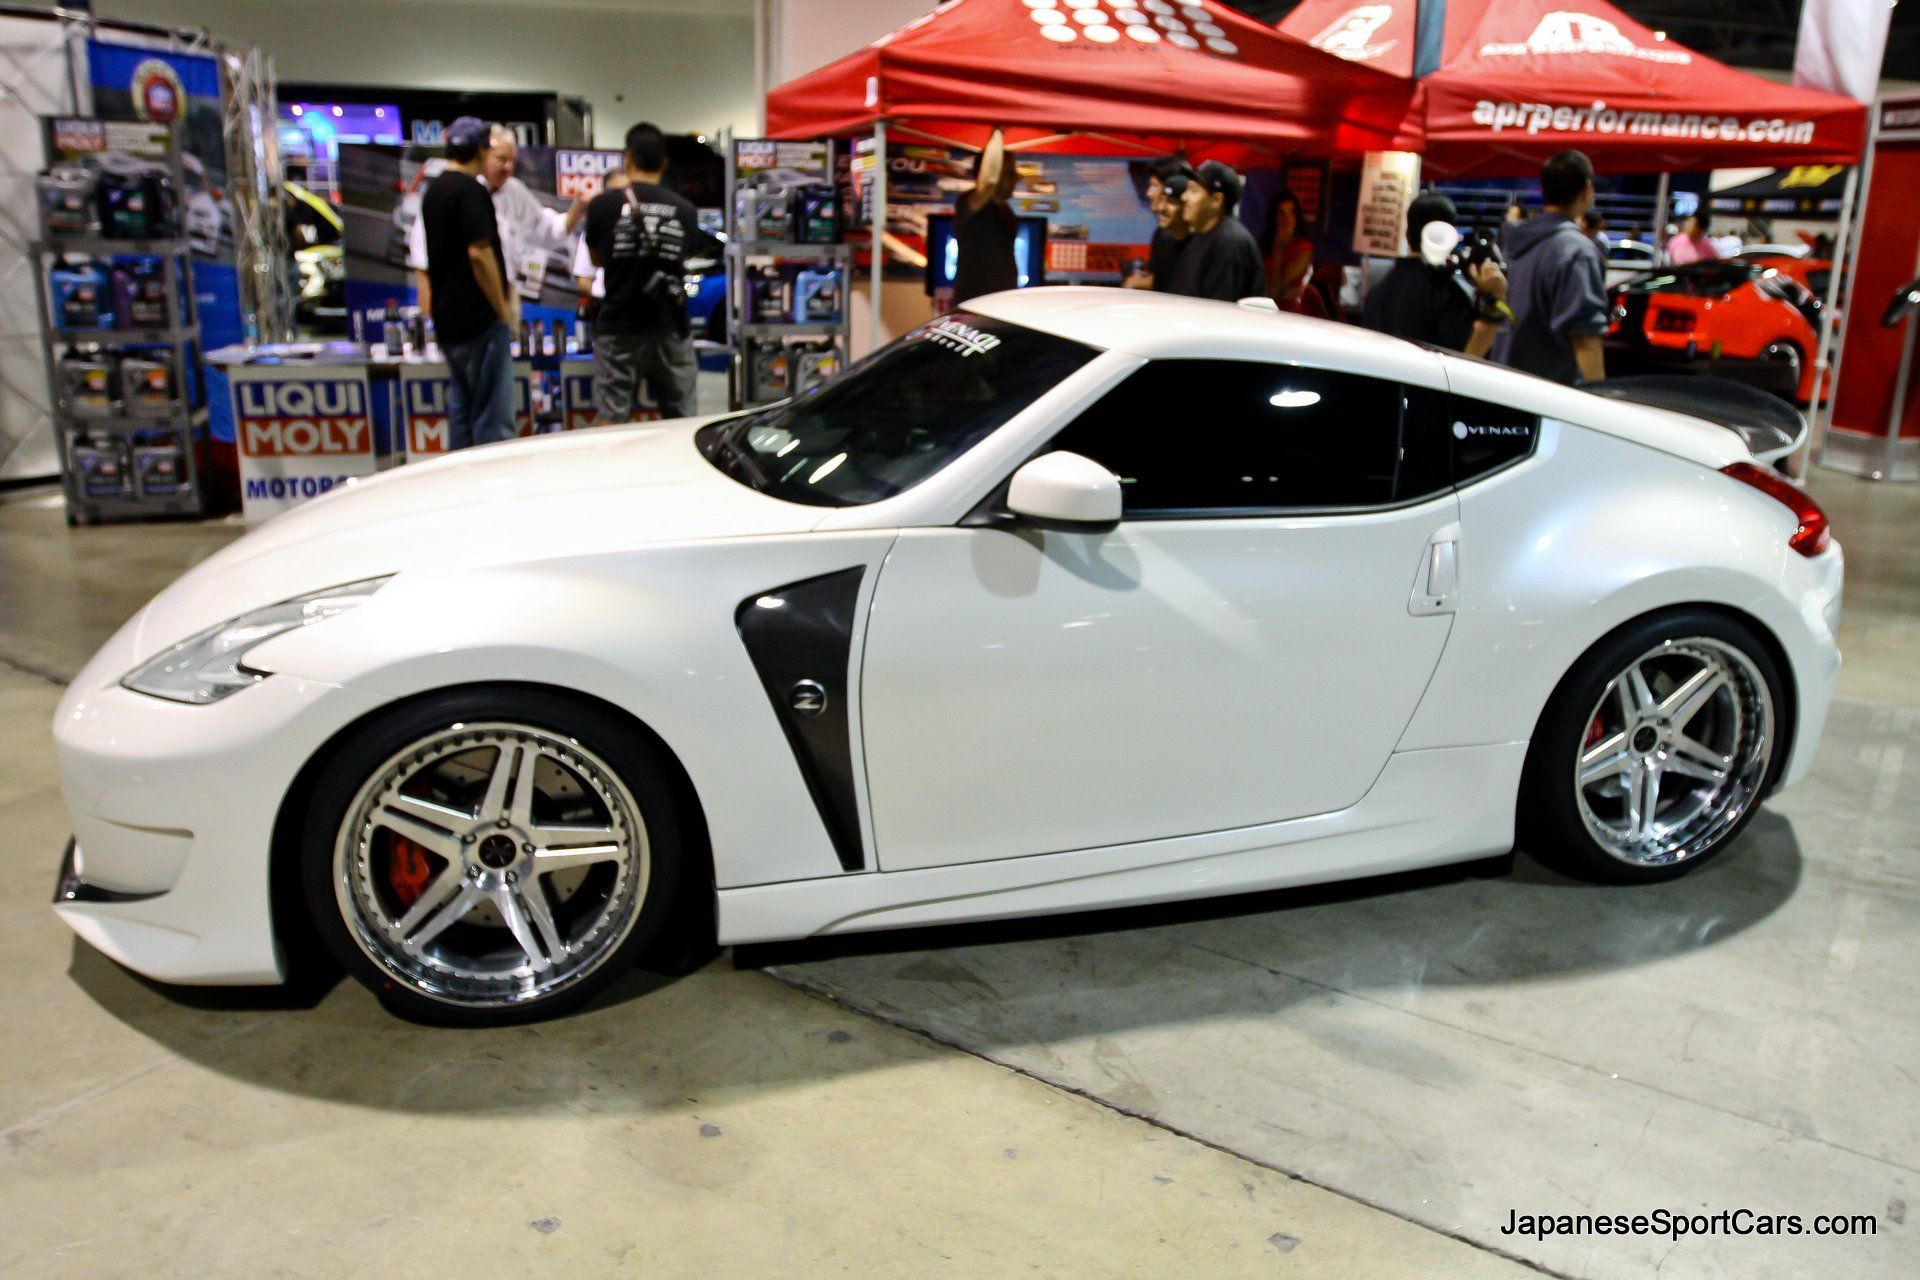 Beau Picture Of Custom Nissan 370Z With Amuse Vestito Body Kit And Venaci Wheels